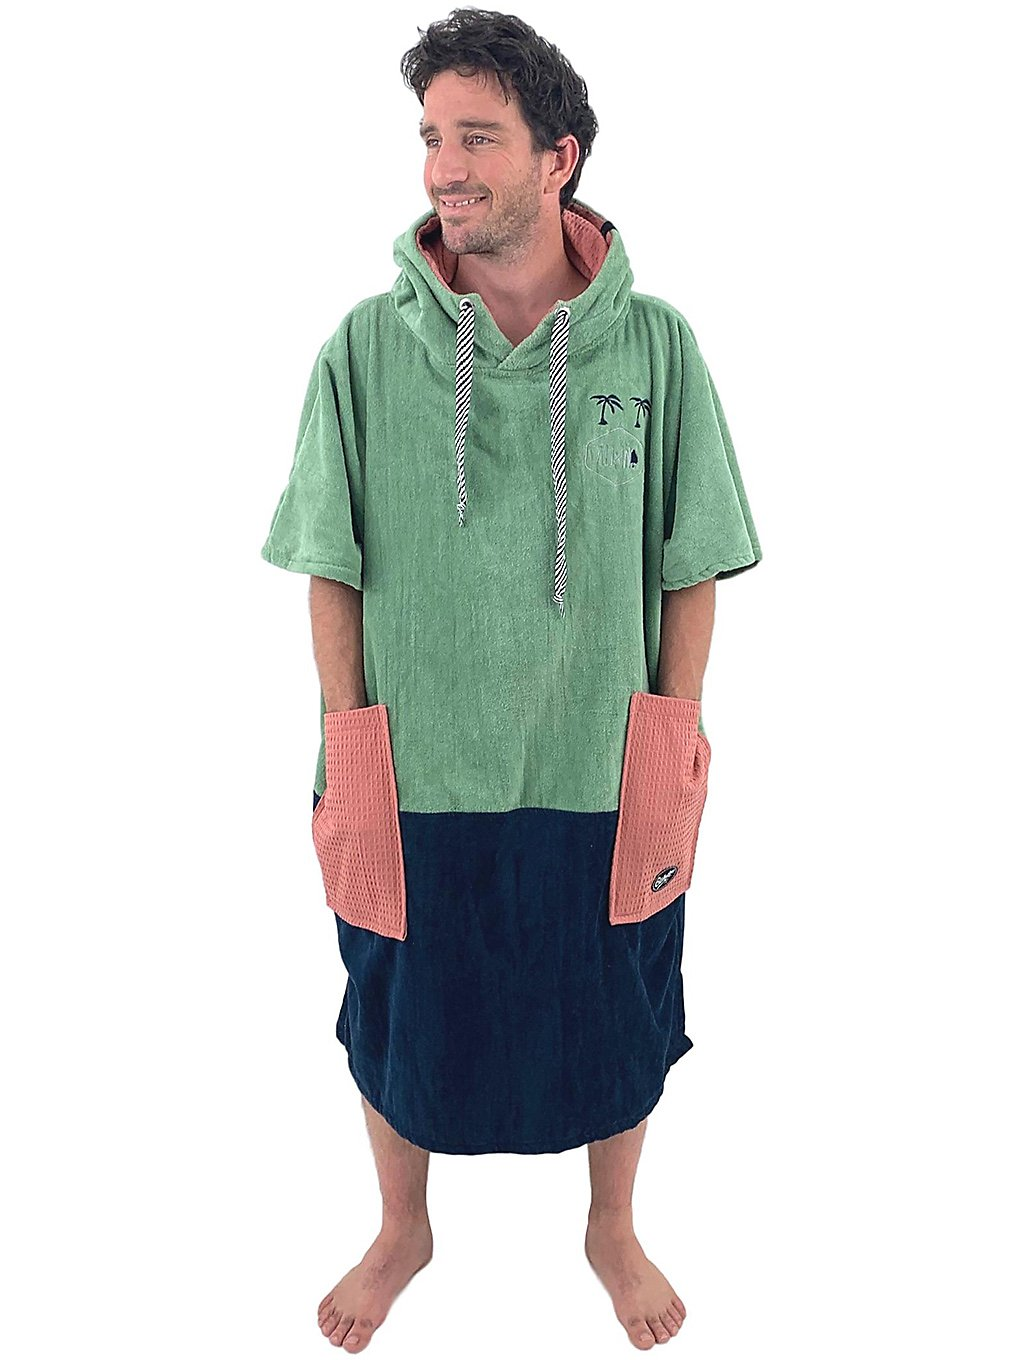 All-In Bumpy Line V Surf Poncho navy